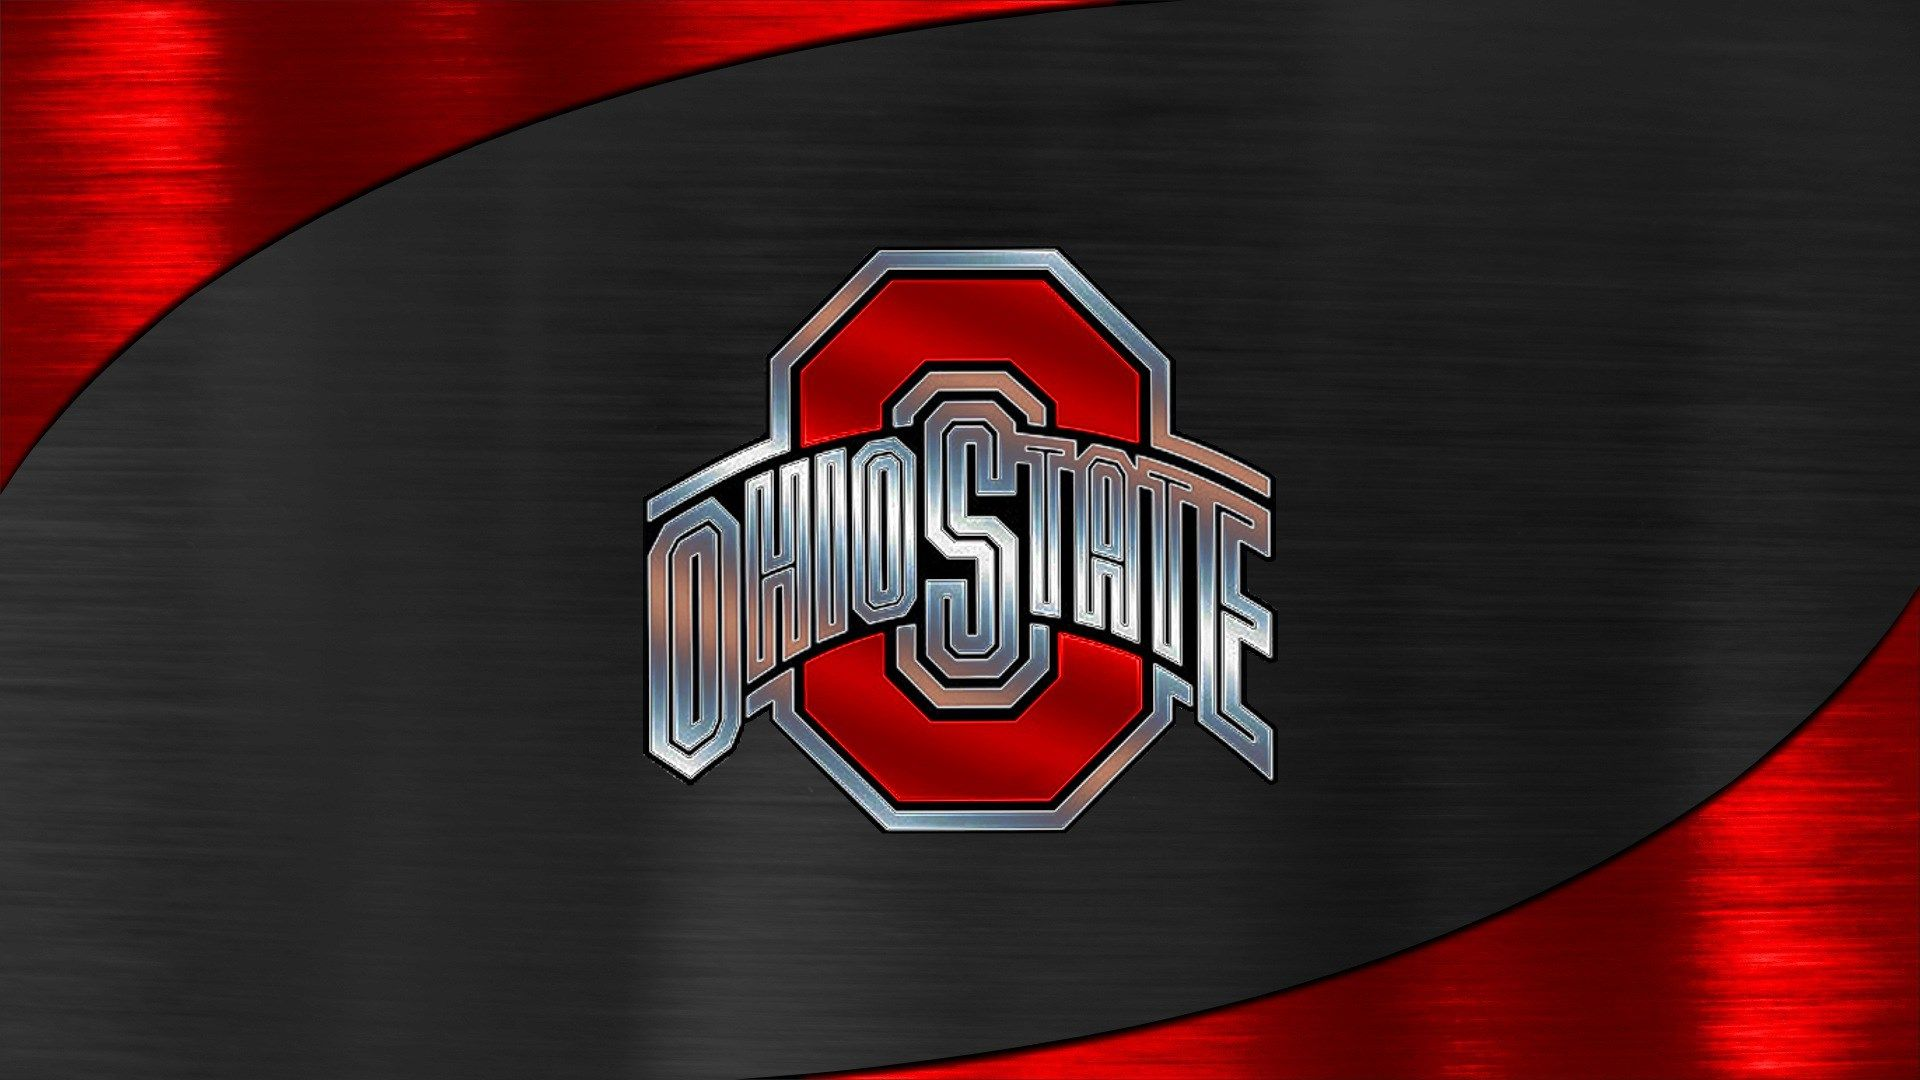 Ohio State Football Osu Desktop Wallpaper 1920x1080 Ohio State Football Ohio State Buckeyes Ohio State Buckeyes Football